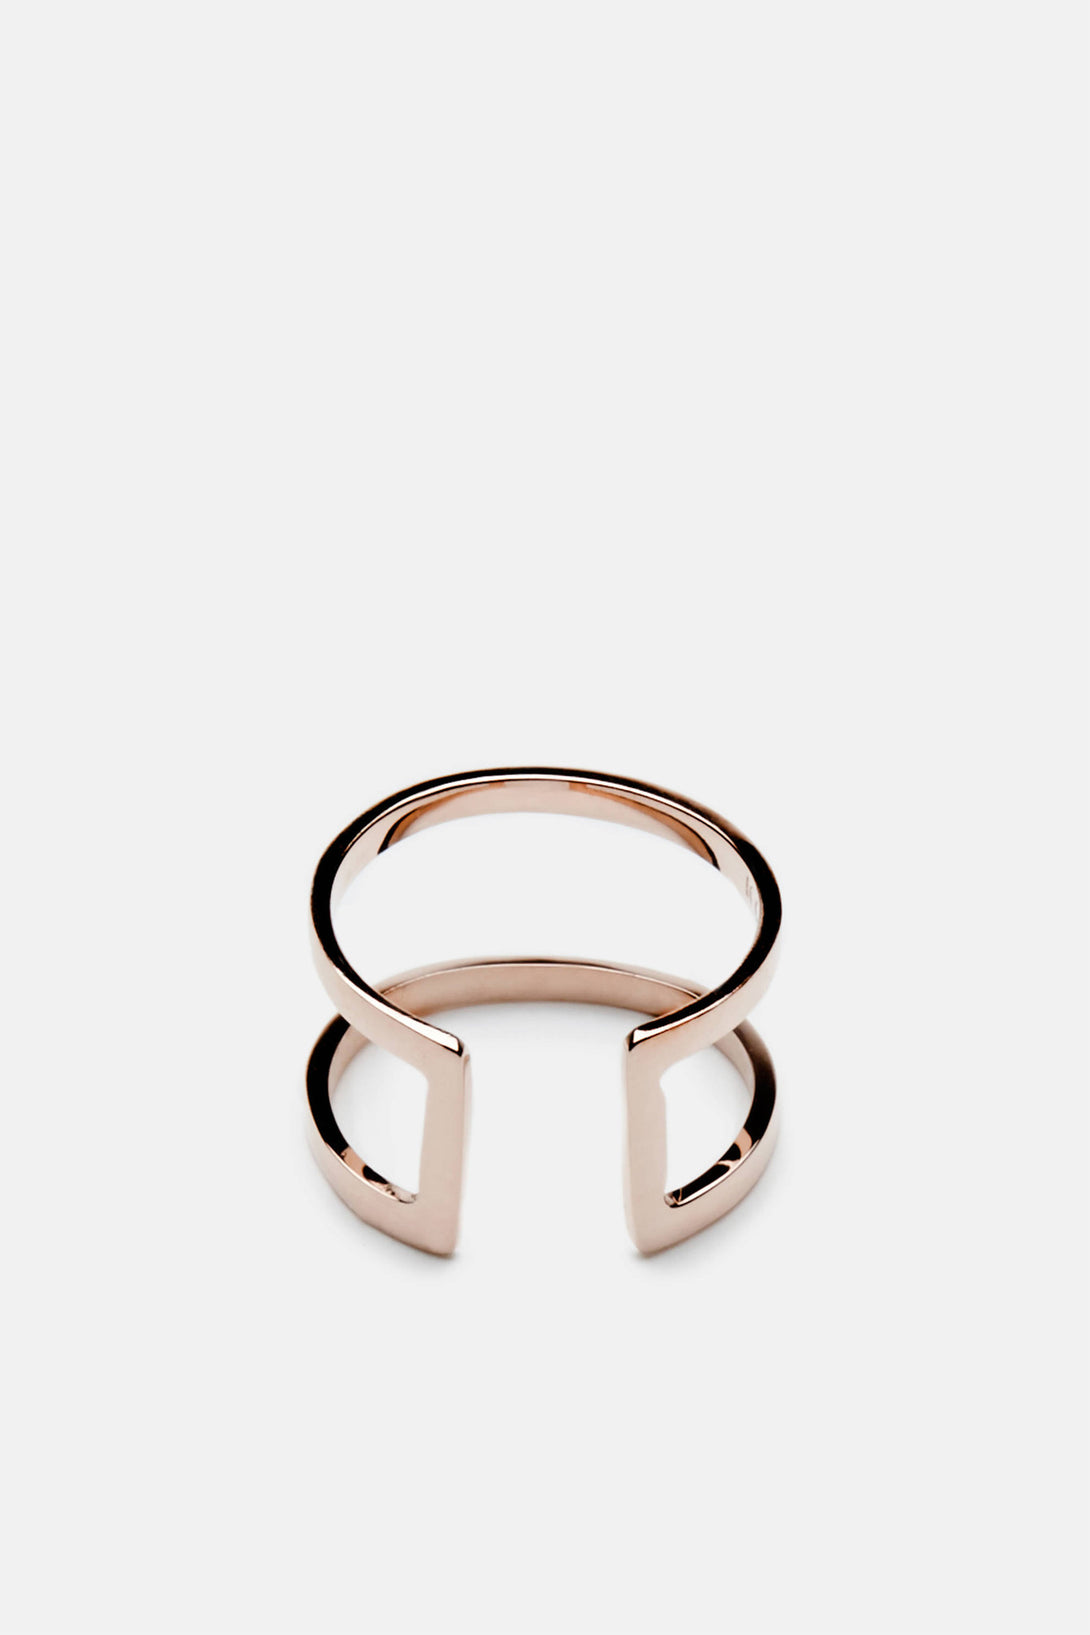 Cage Ring - 10K Rose Gold